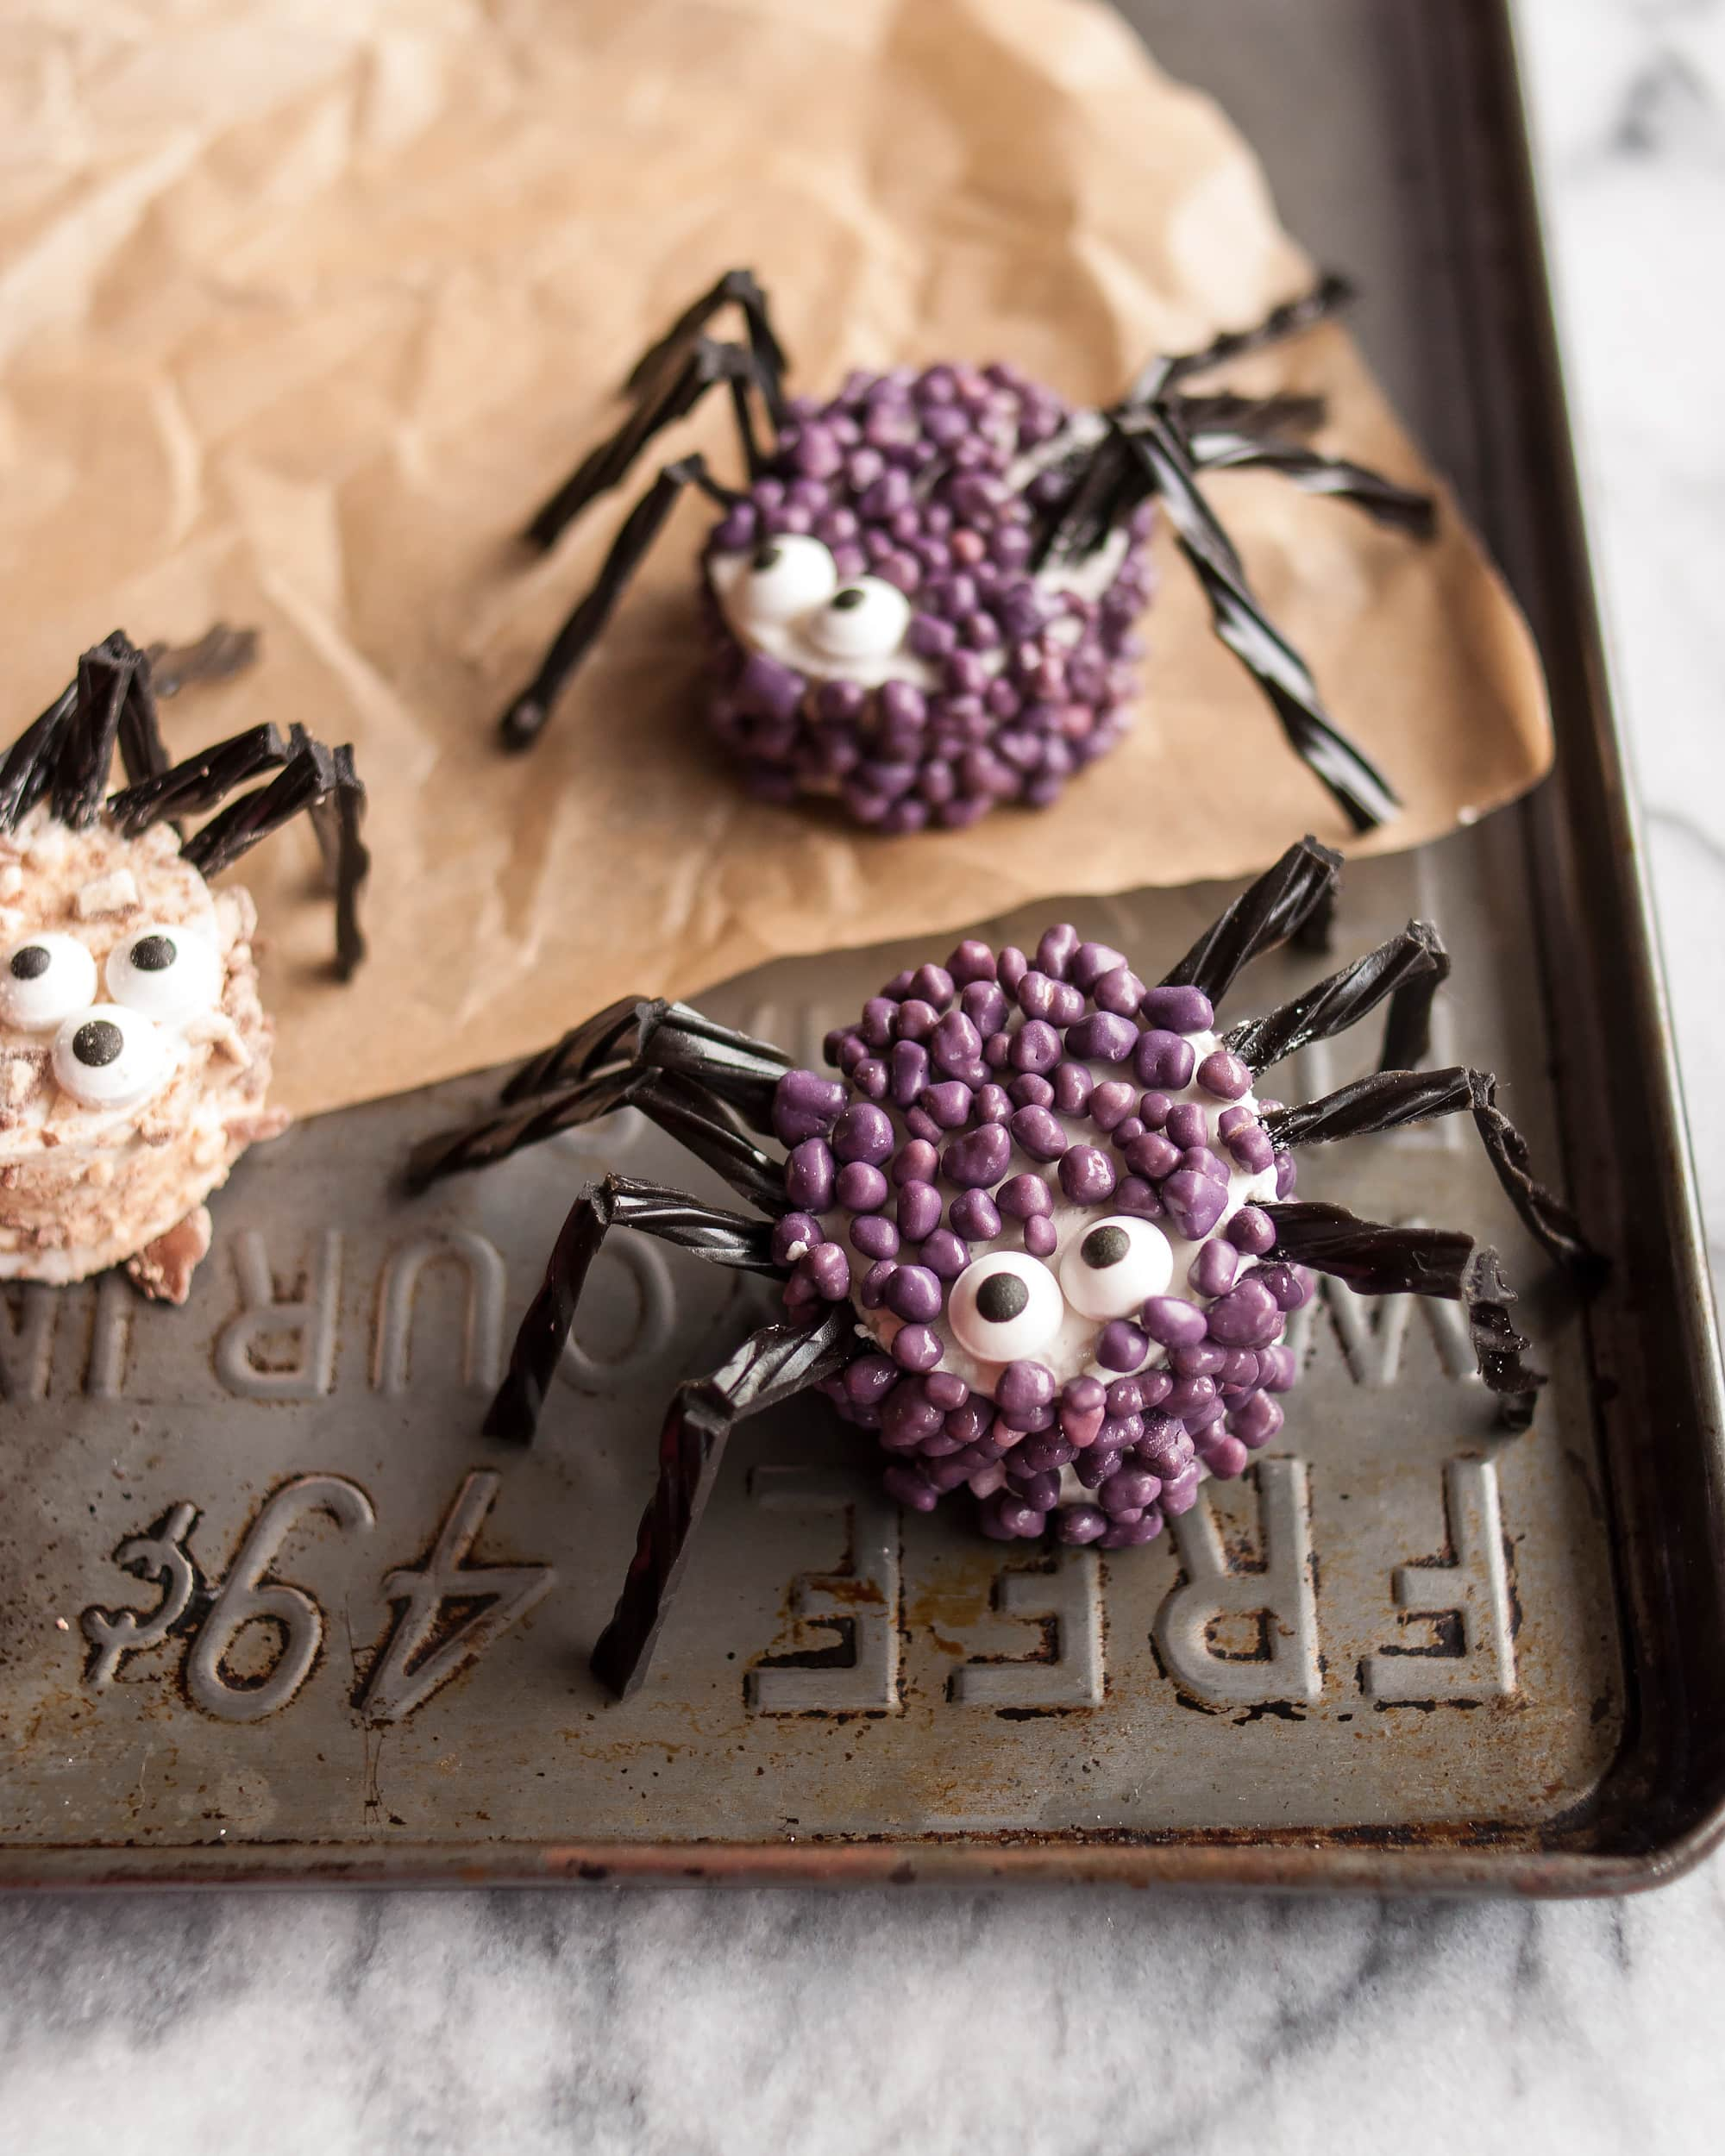 Spooky Halloween Treats, Storage Ideas for Kitchen Utensils, a Chef's Rental Kitchen, and Cozy Cinnamon Recipes: gallery image 15